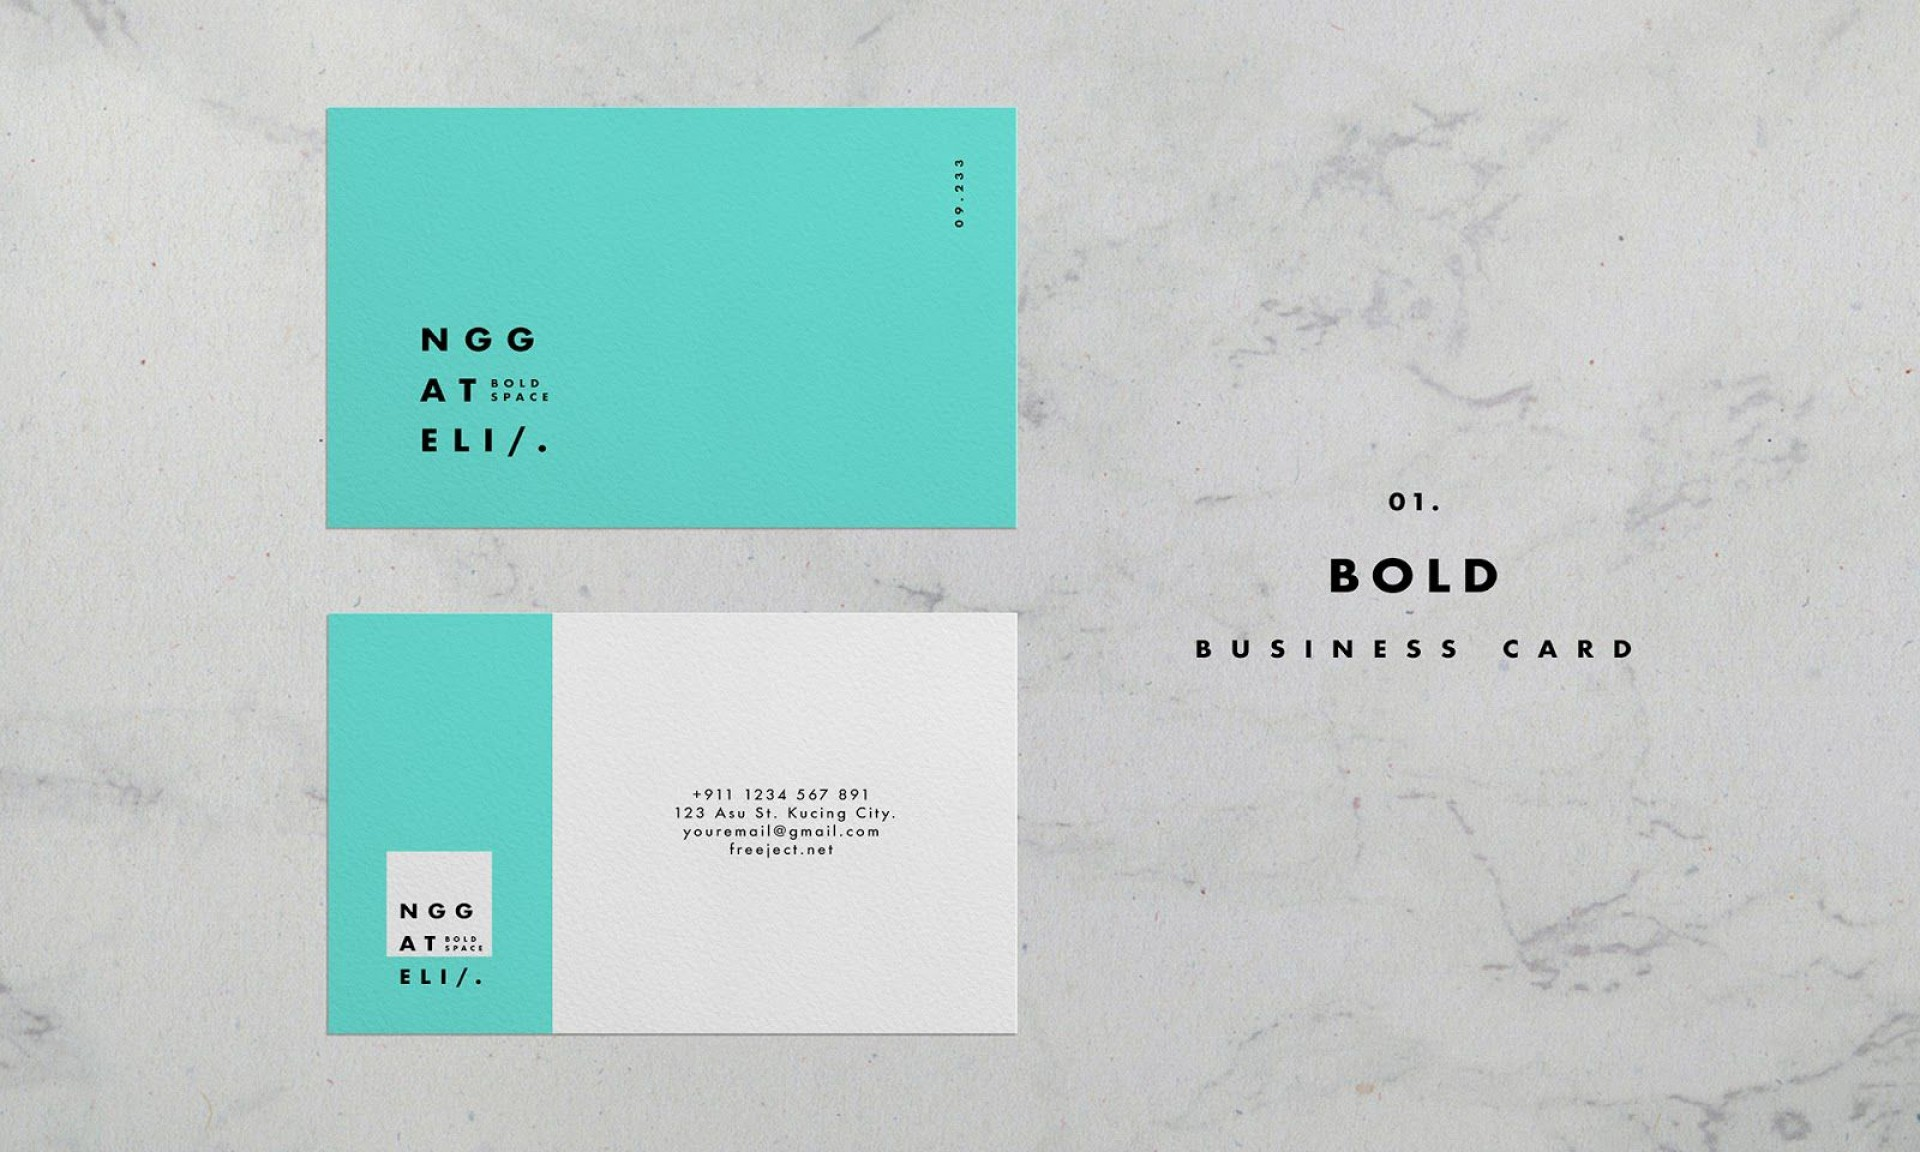 006 Unusual Simple Busines Card Template Psd High Resolution  Design In Photoshop Minimalist Free1920